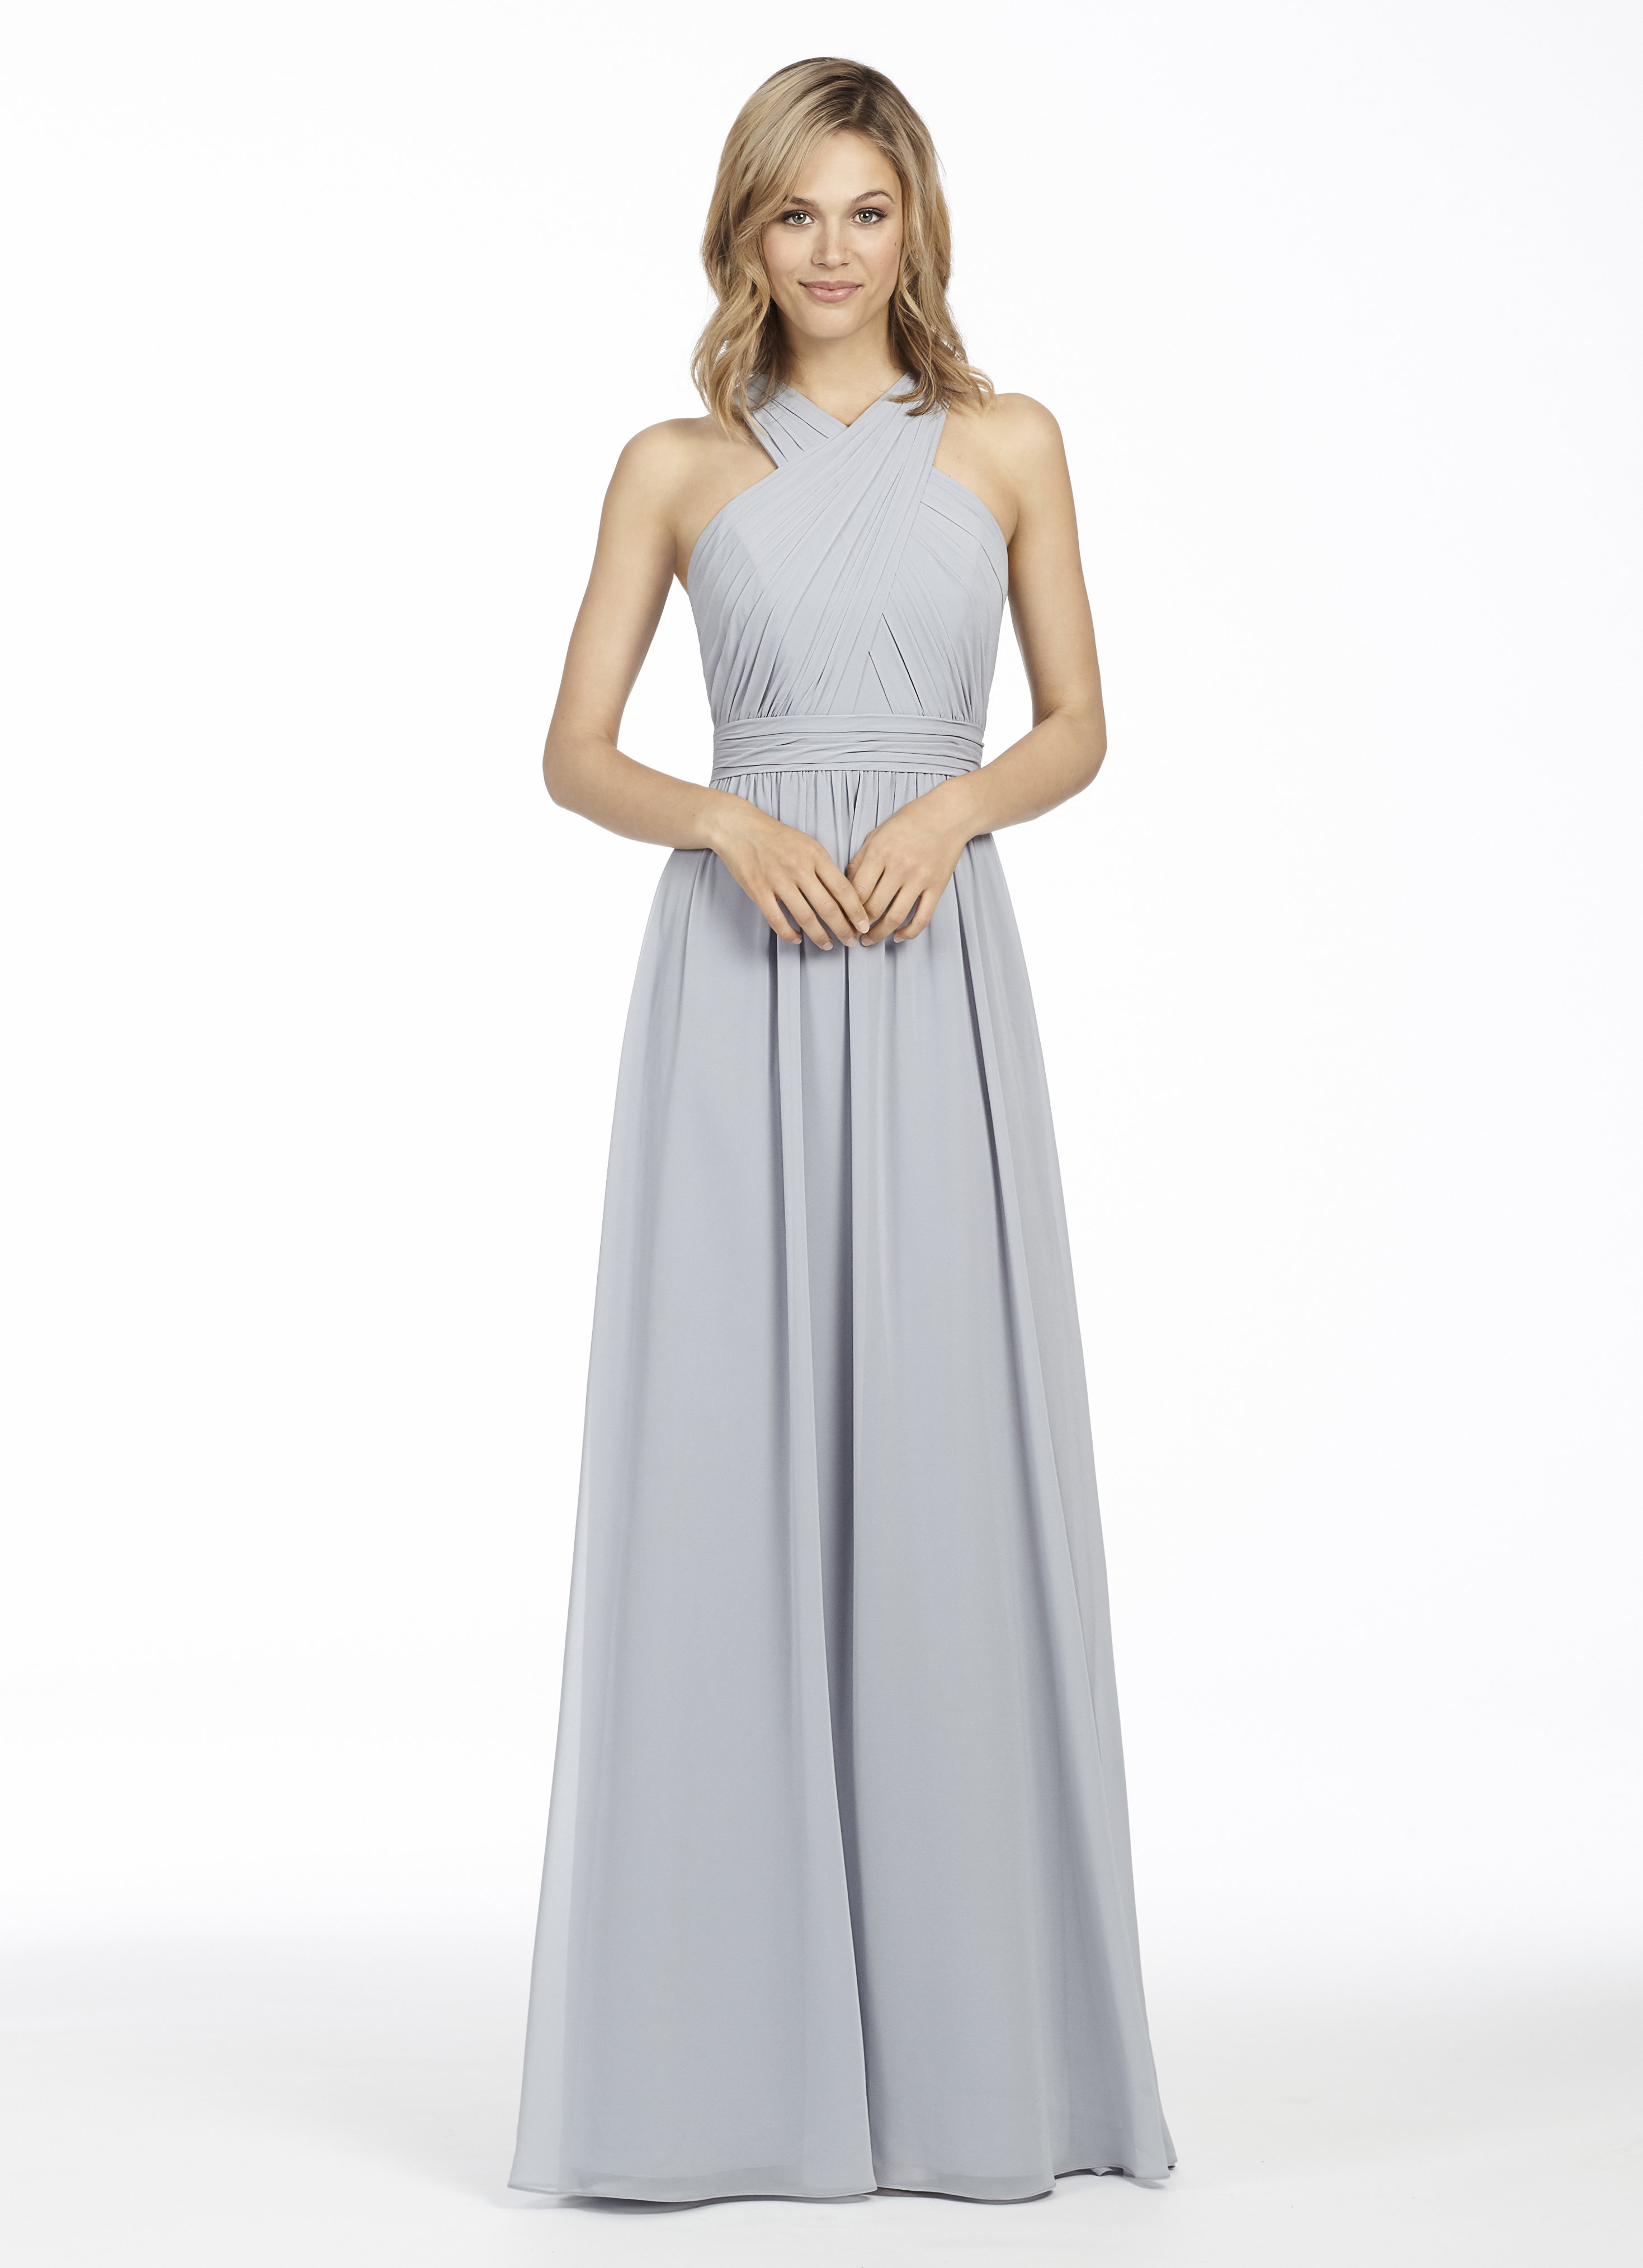 style 5760 page=1